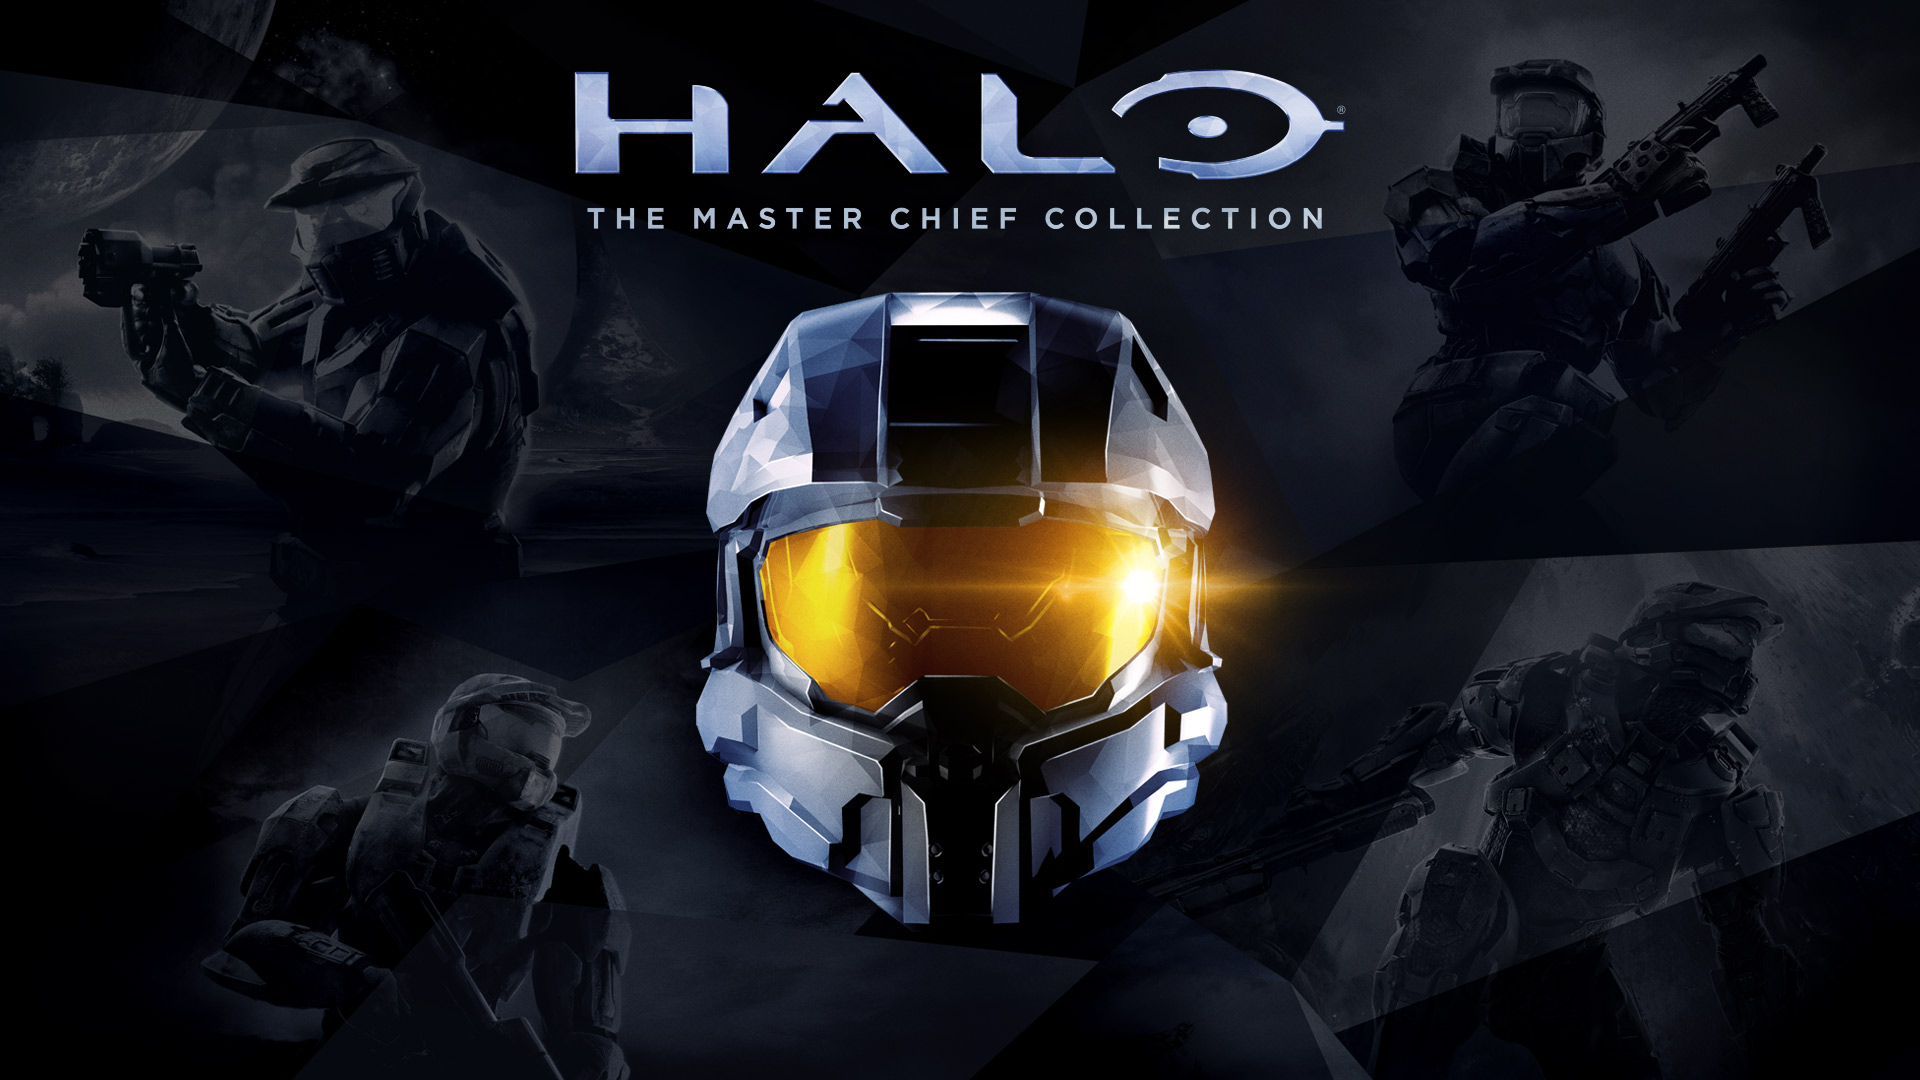 Halo Master Chief Wallpaper Collections  Amazing Wallpaperz